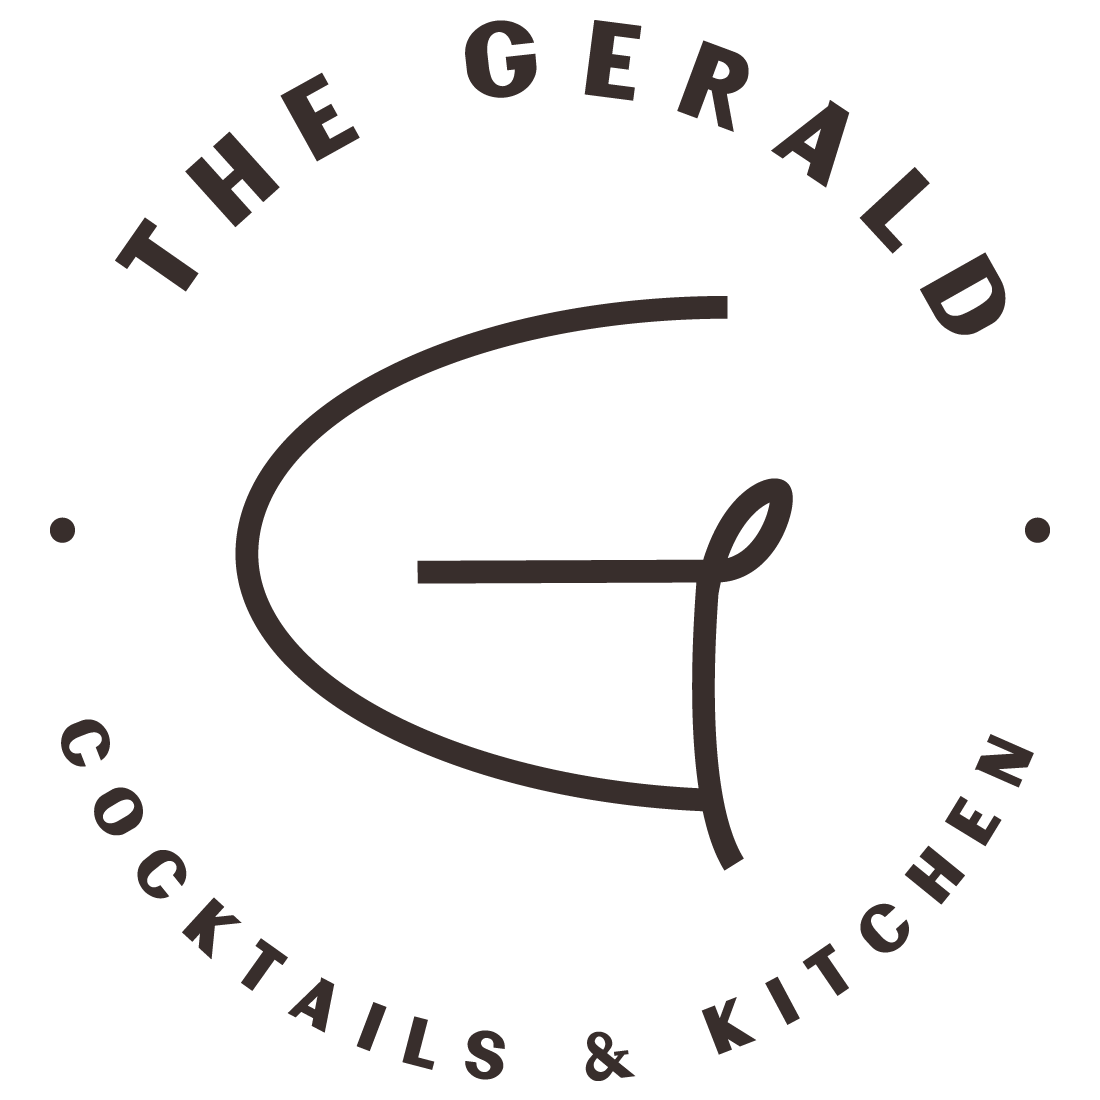 Business logo of The Gerald